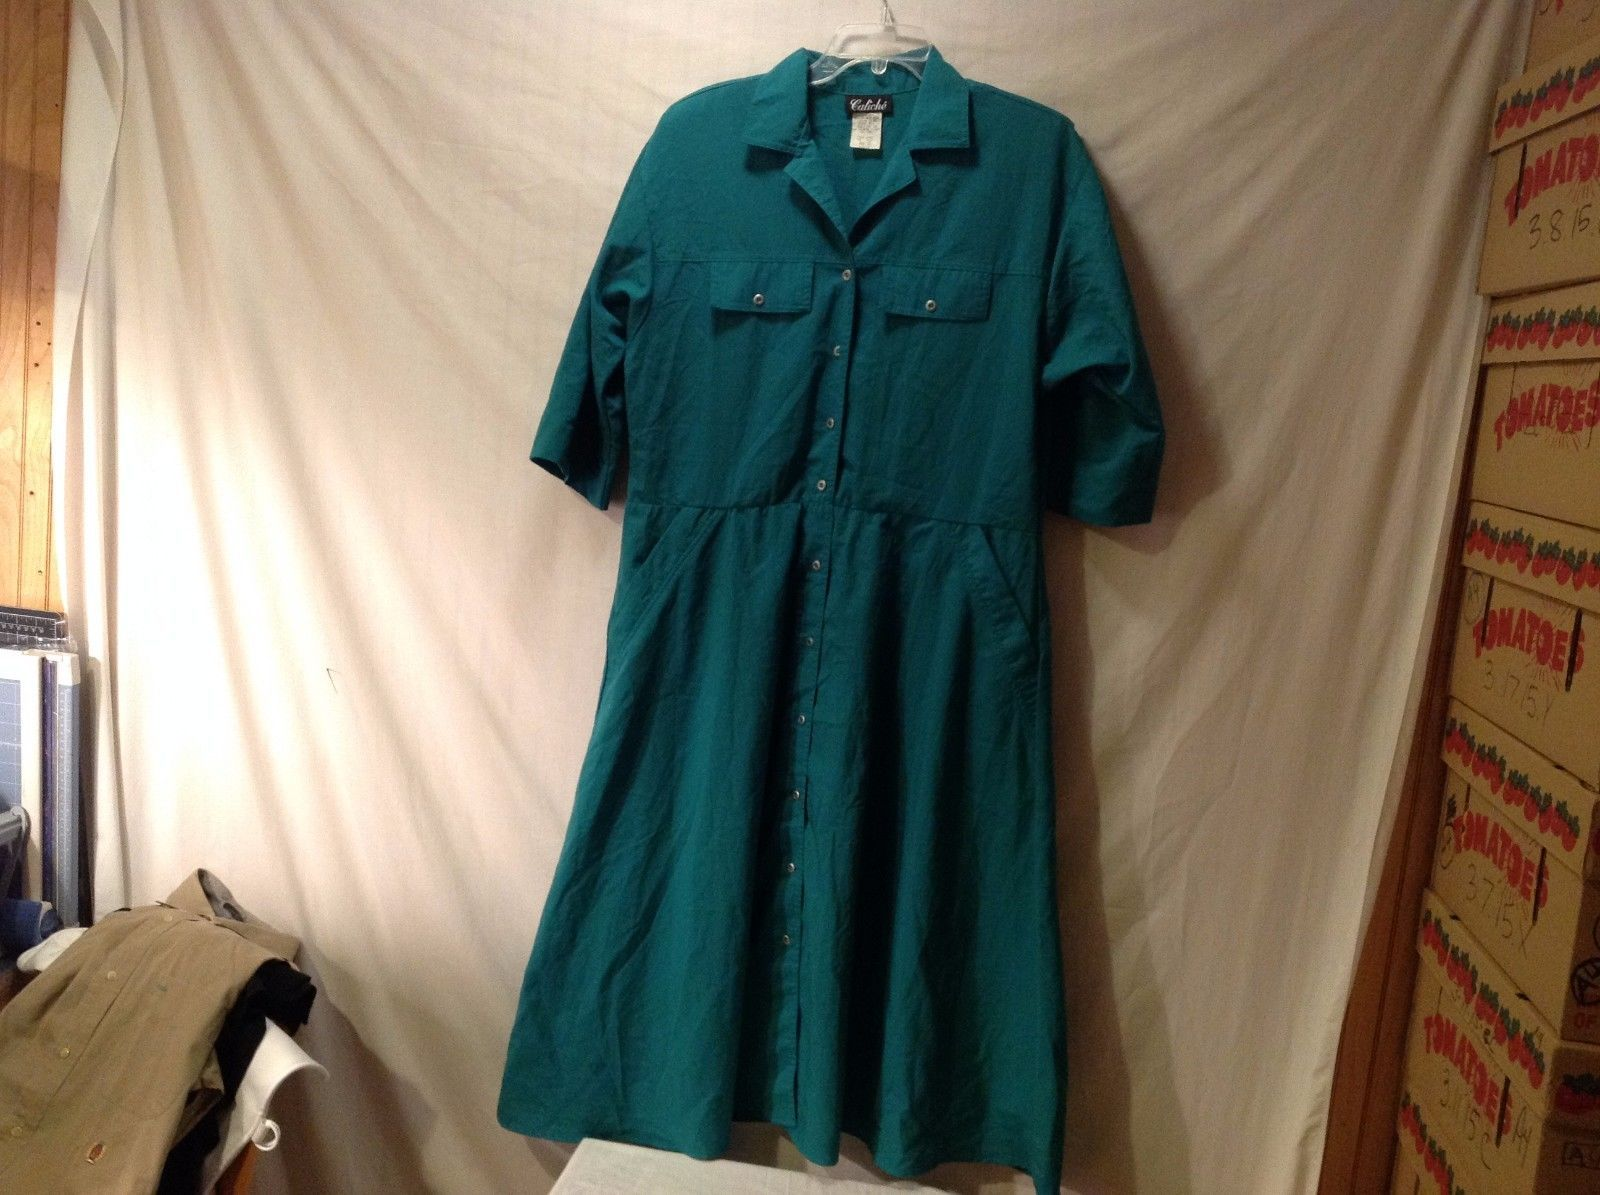 Women's Caliche Emerald Green Dress Size 14 Long Lightweight Buttons Up Front